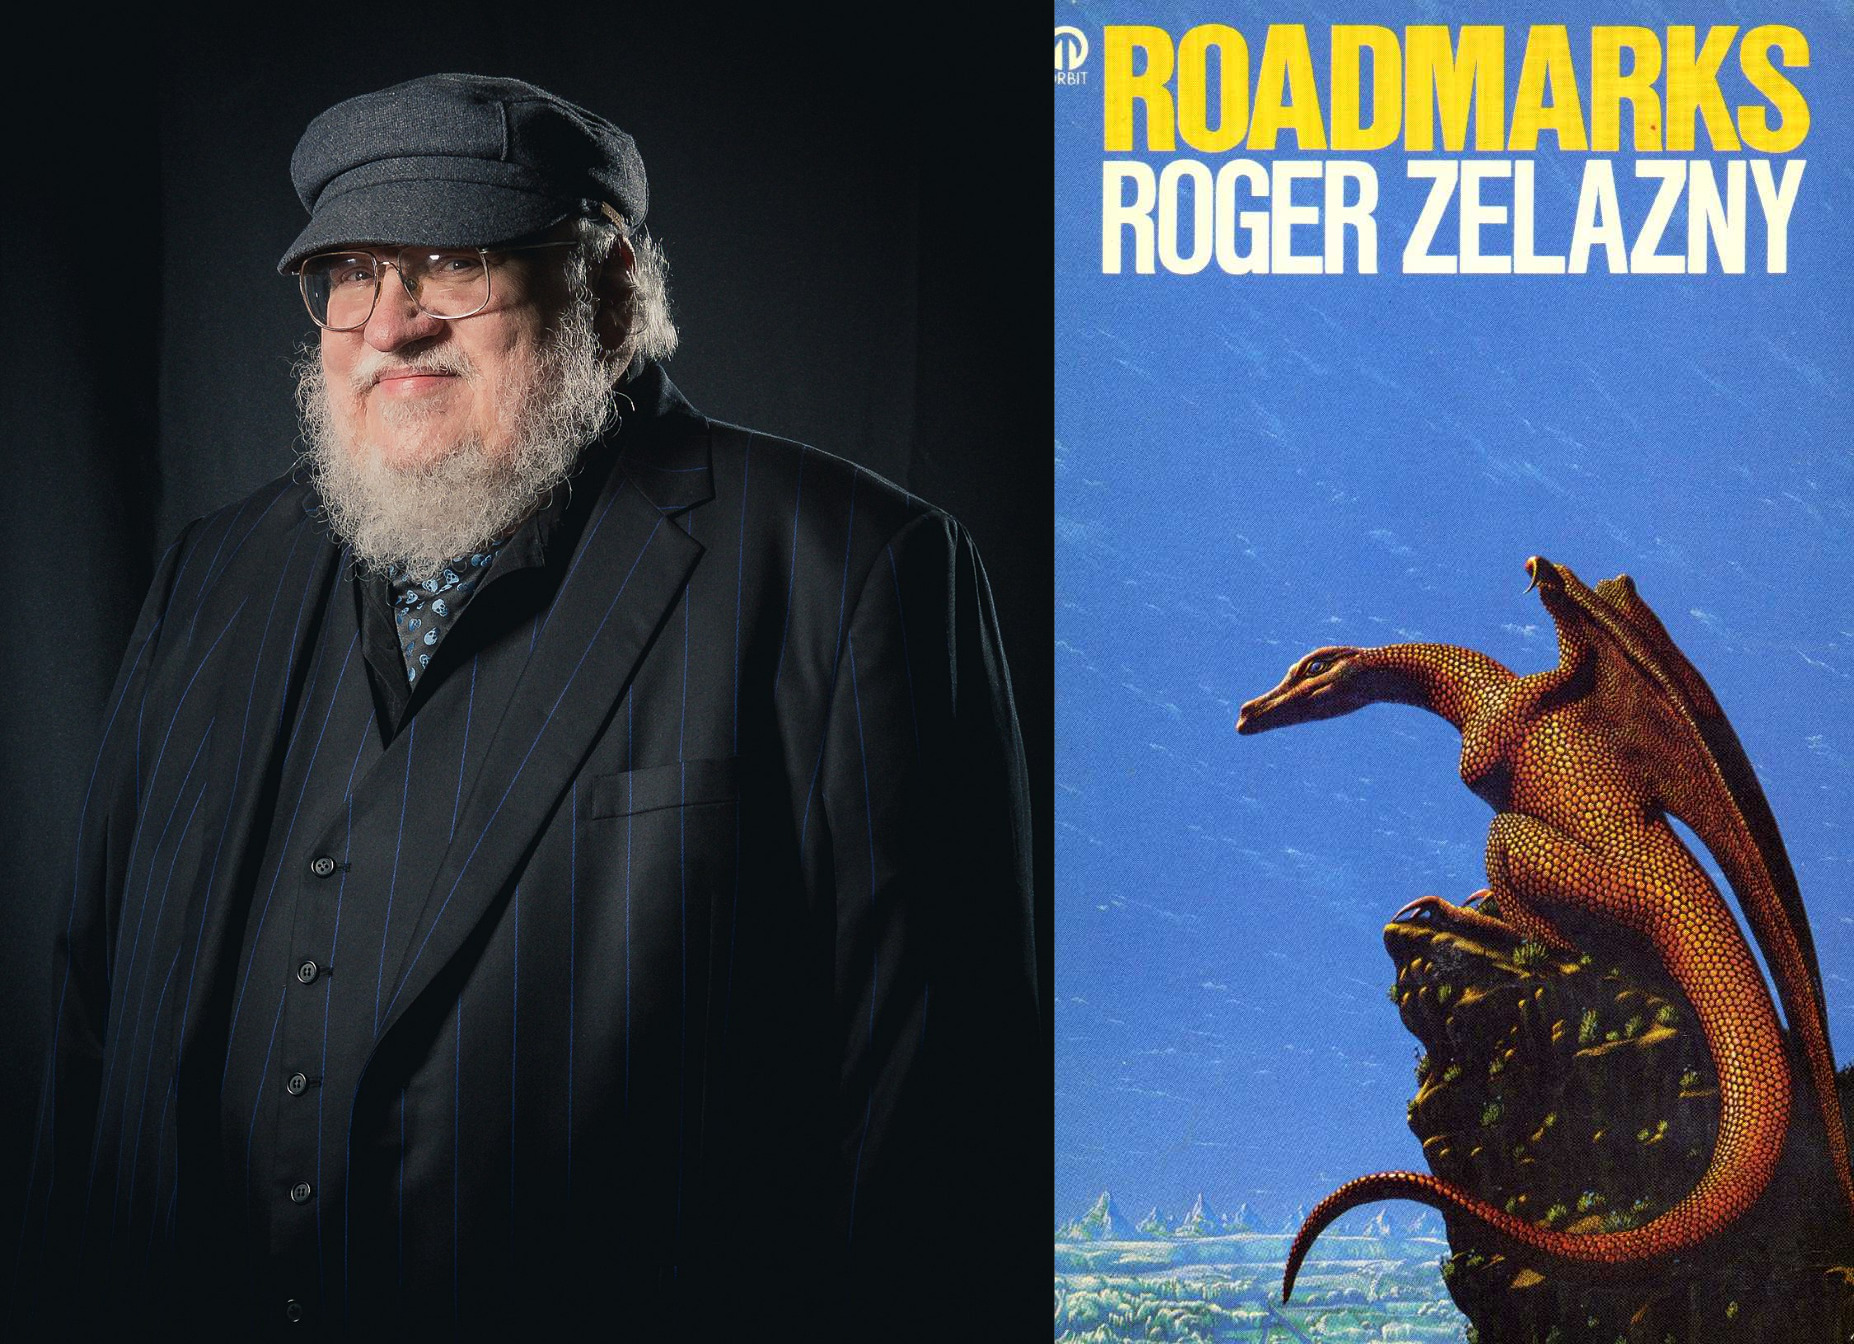 Roger Zelazny's Roadmarks Is Coming to HBO — With the Help of George R.R. Martin